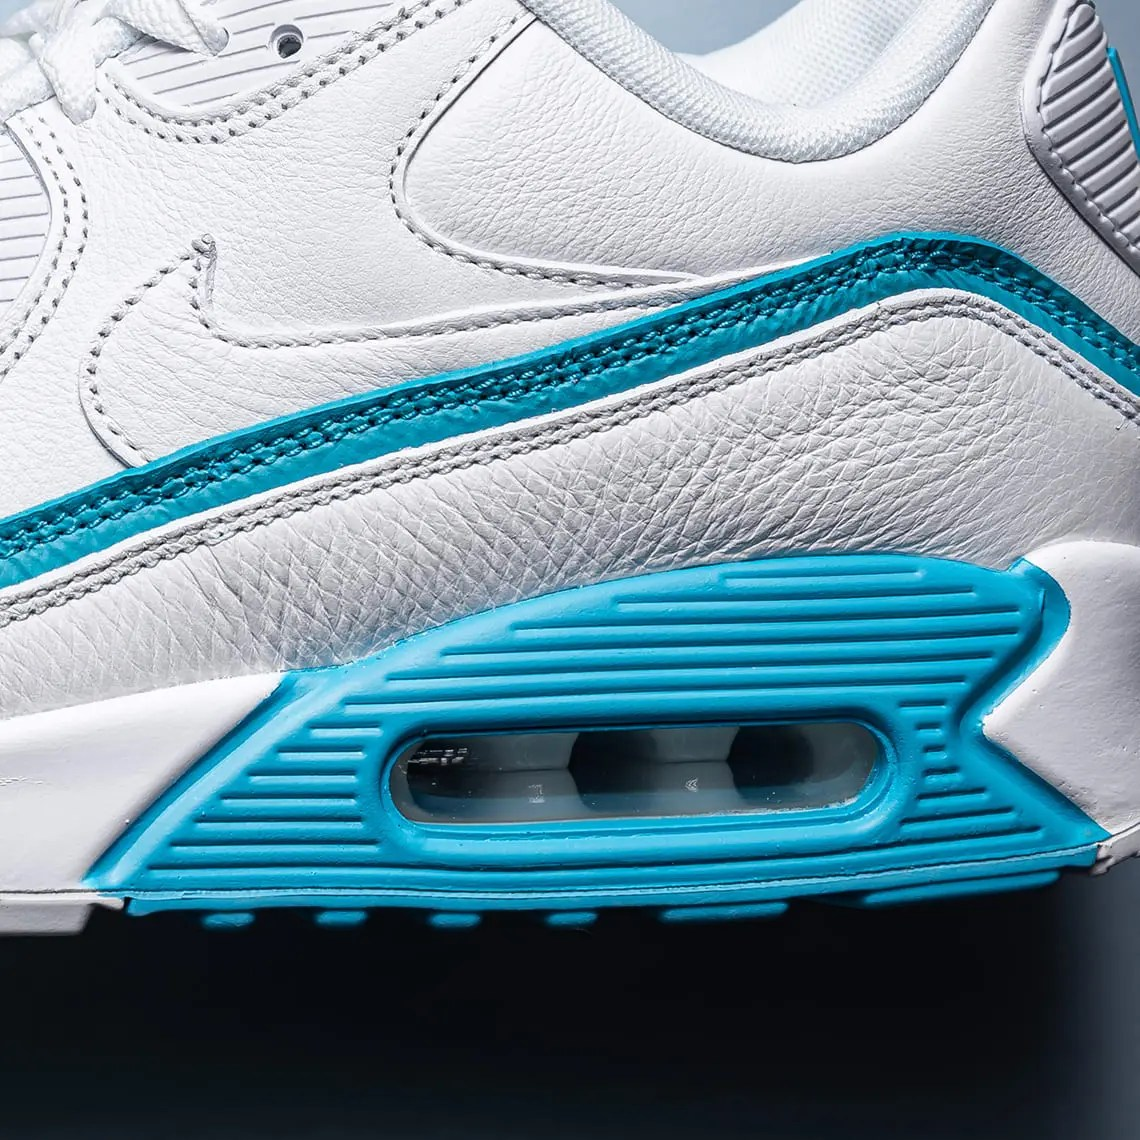 undefeated-air-max-90-white-blue-fury-cj7197-102-04